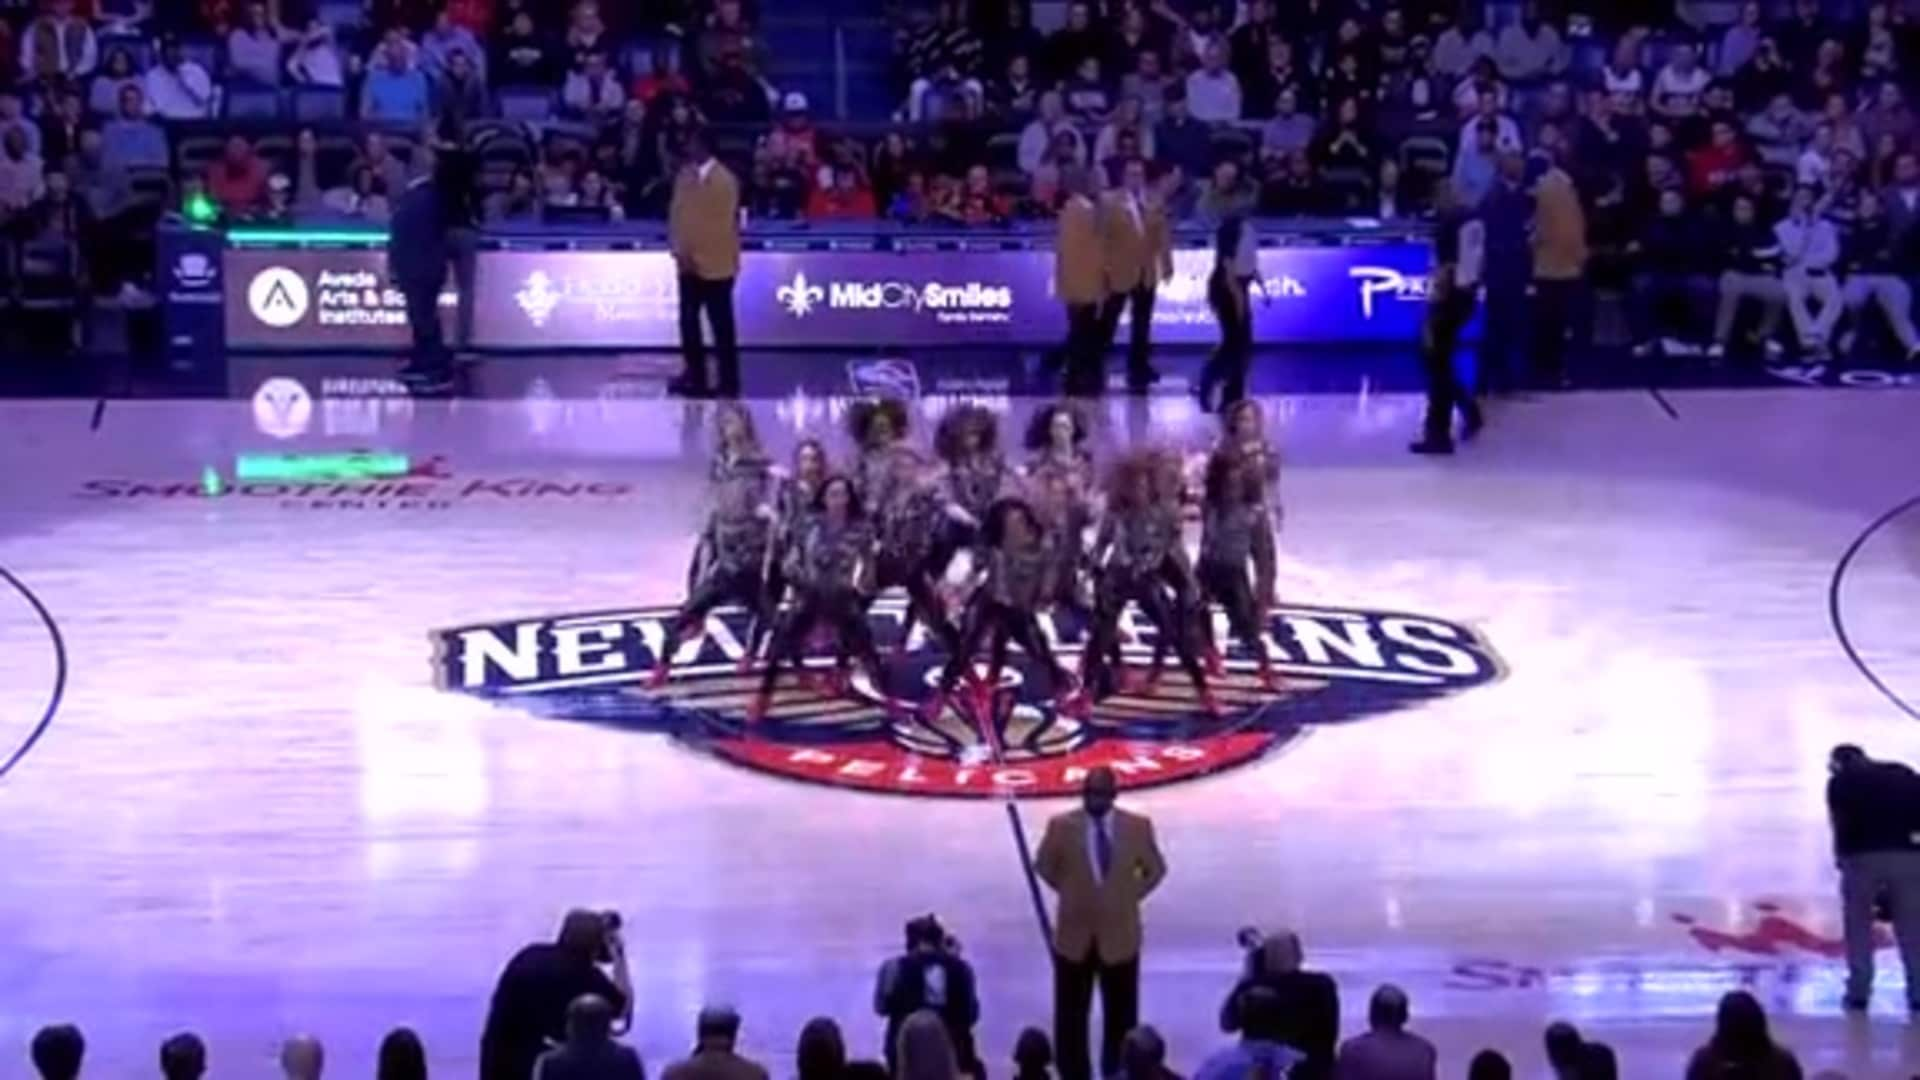 Entertainment: Pelicans Dance Team 3rd quarter performance - January 8 vs. Chicago Bulls